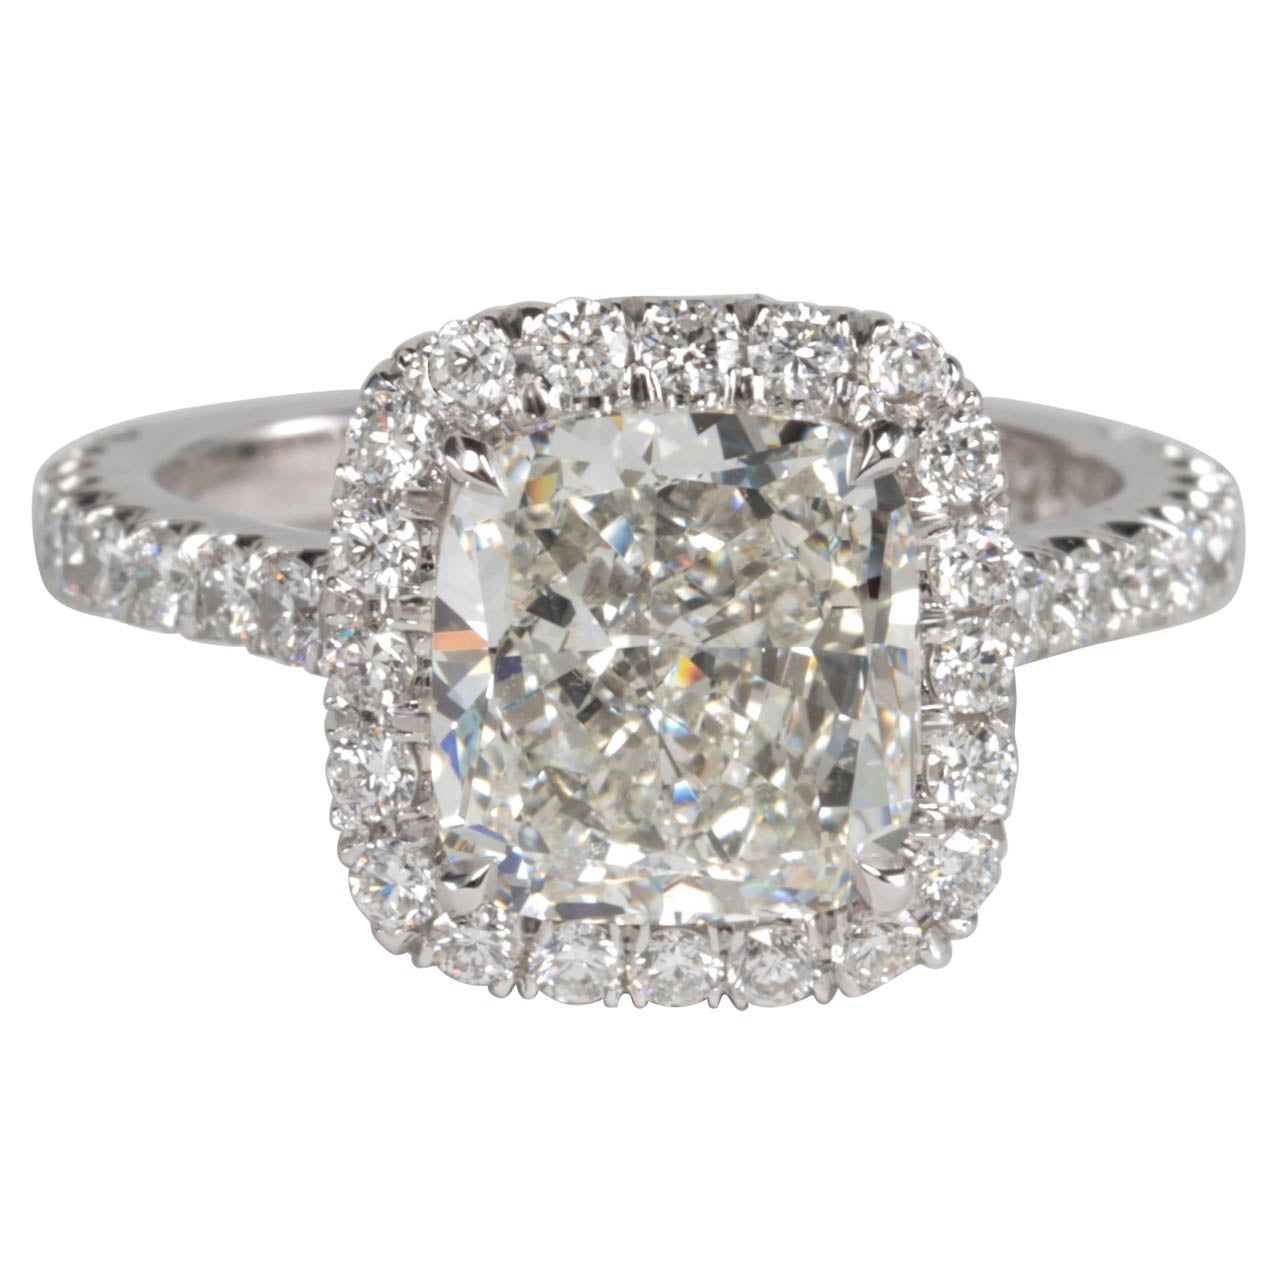 Classic GIA Certified Cushion Cut Diamond Halo Engagement Ring Set in Platinu